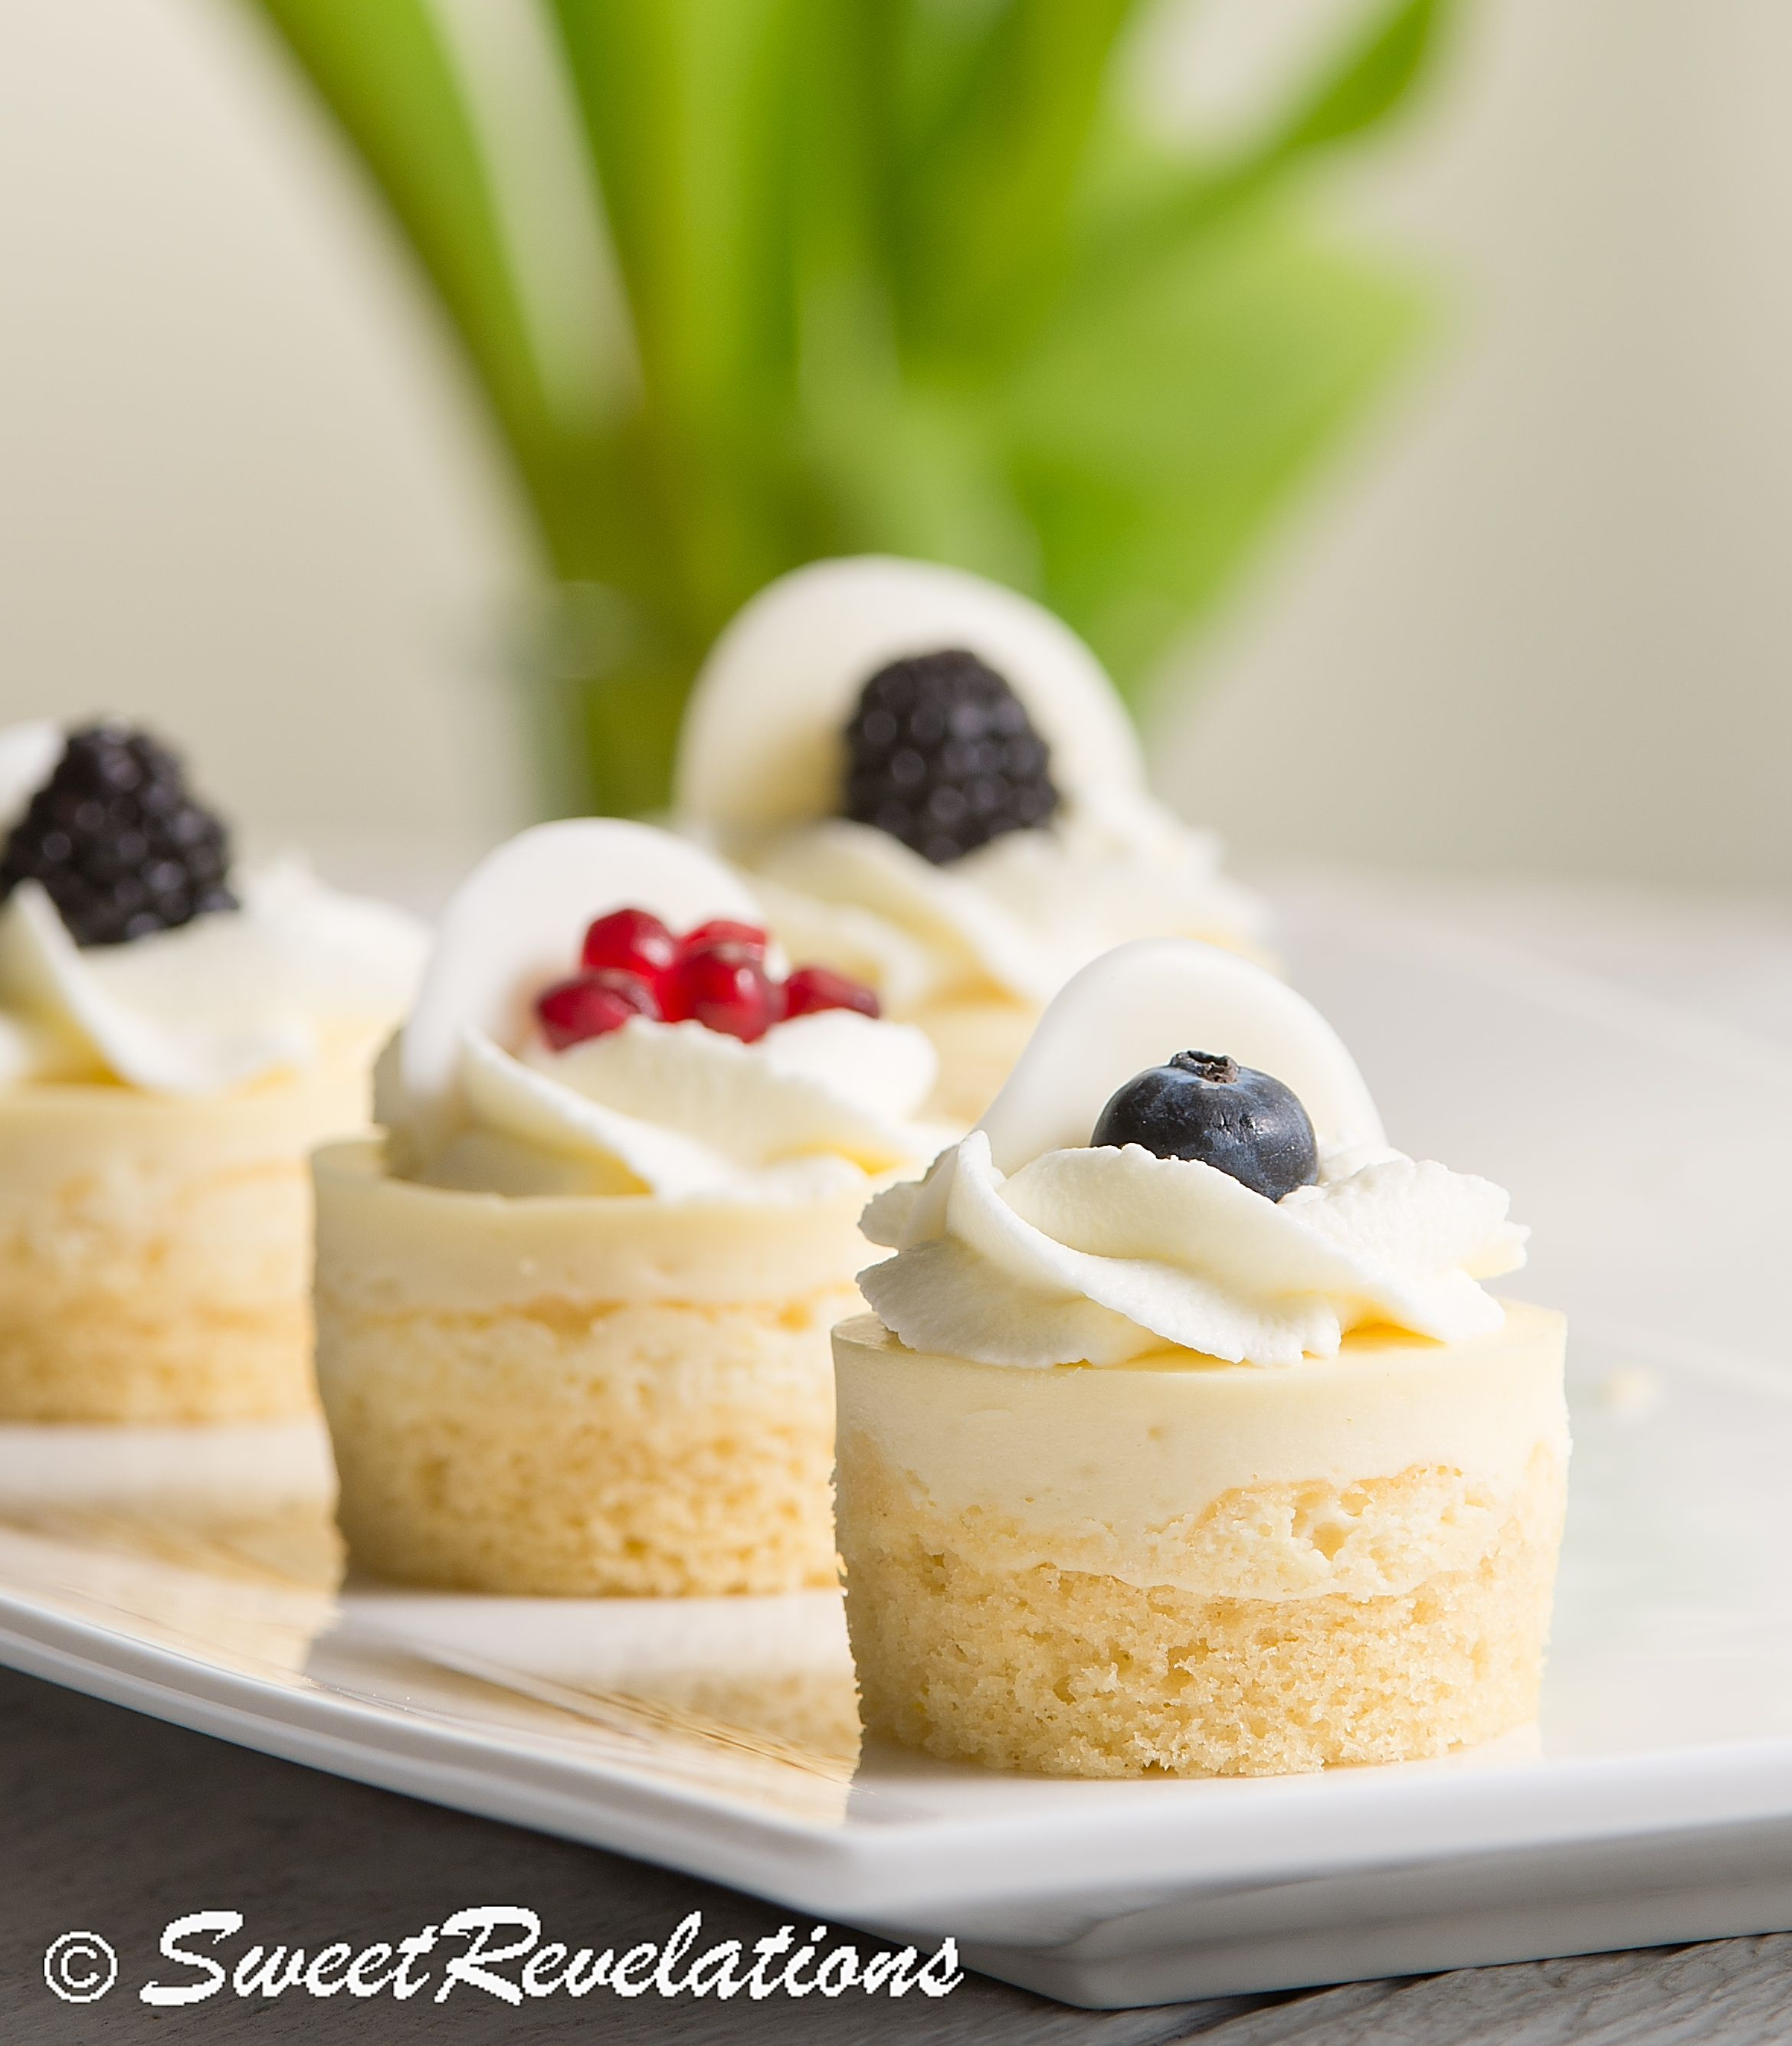 Mini Lemon Sponge Cheesecakes